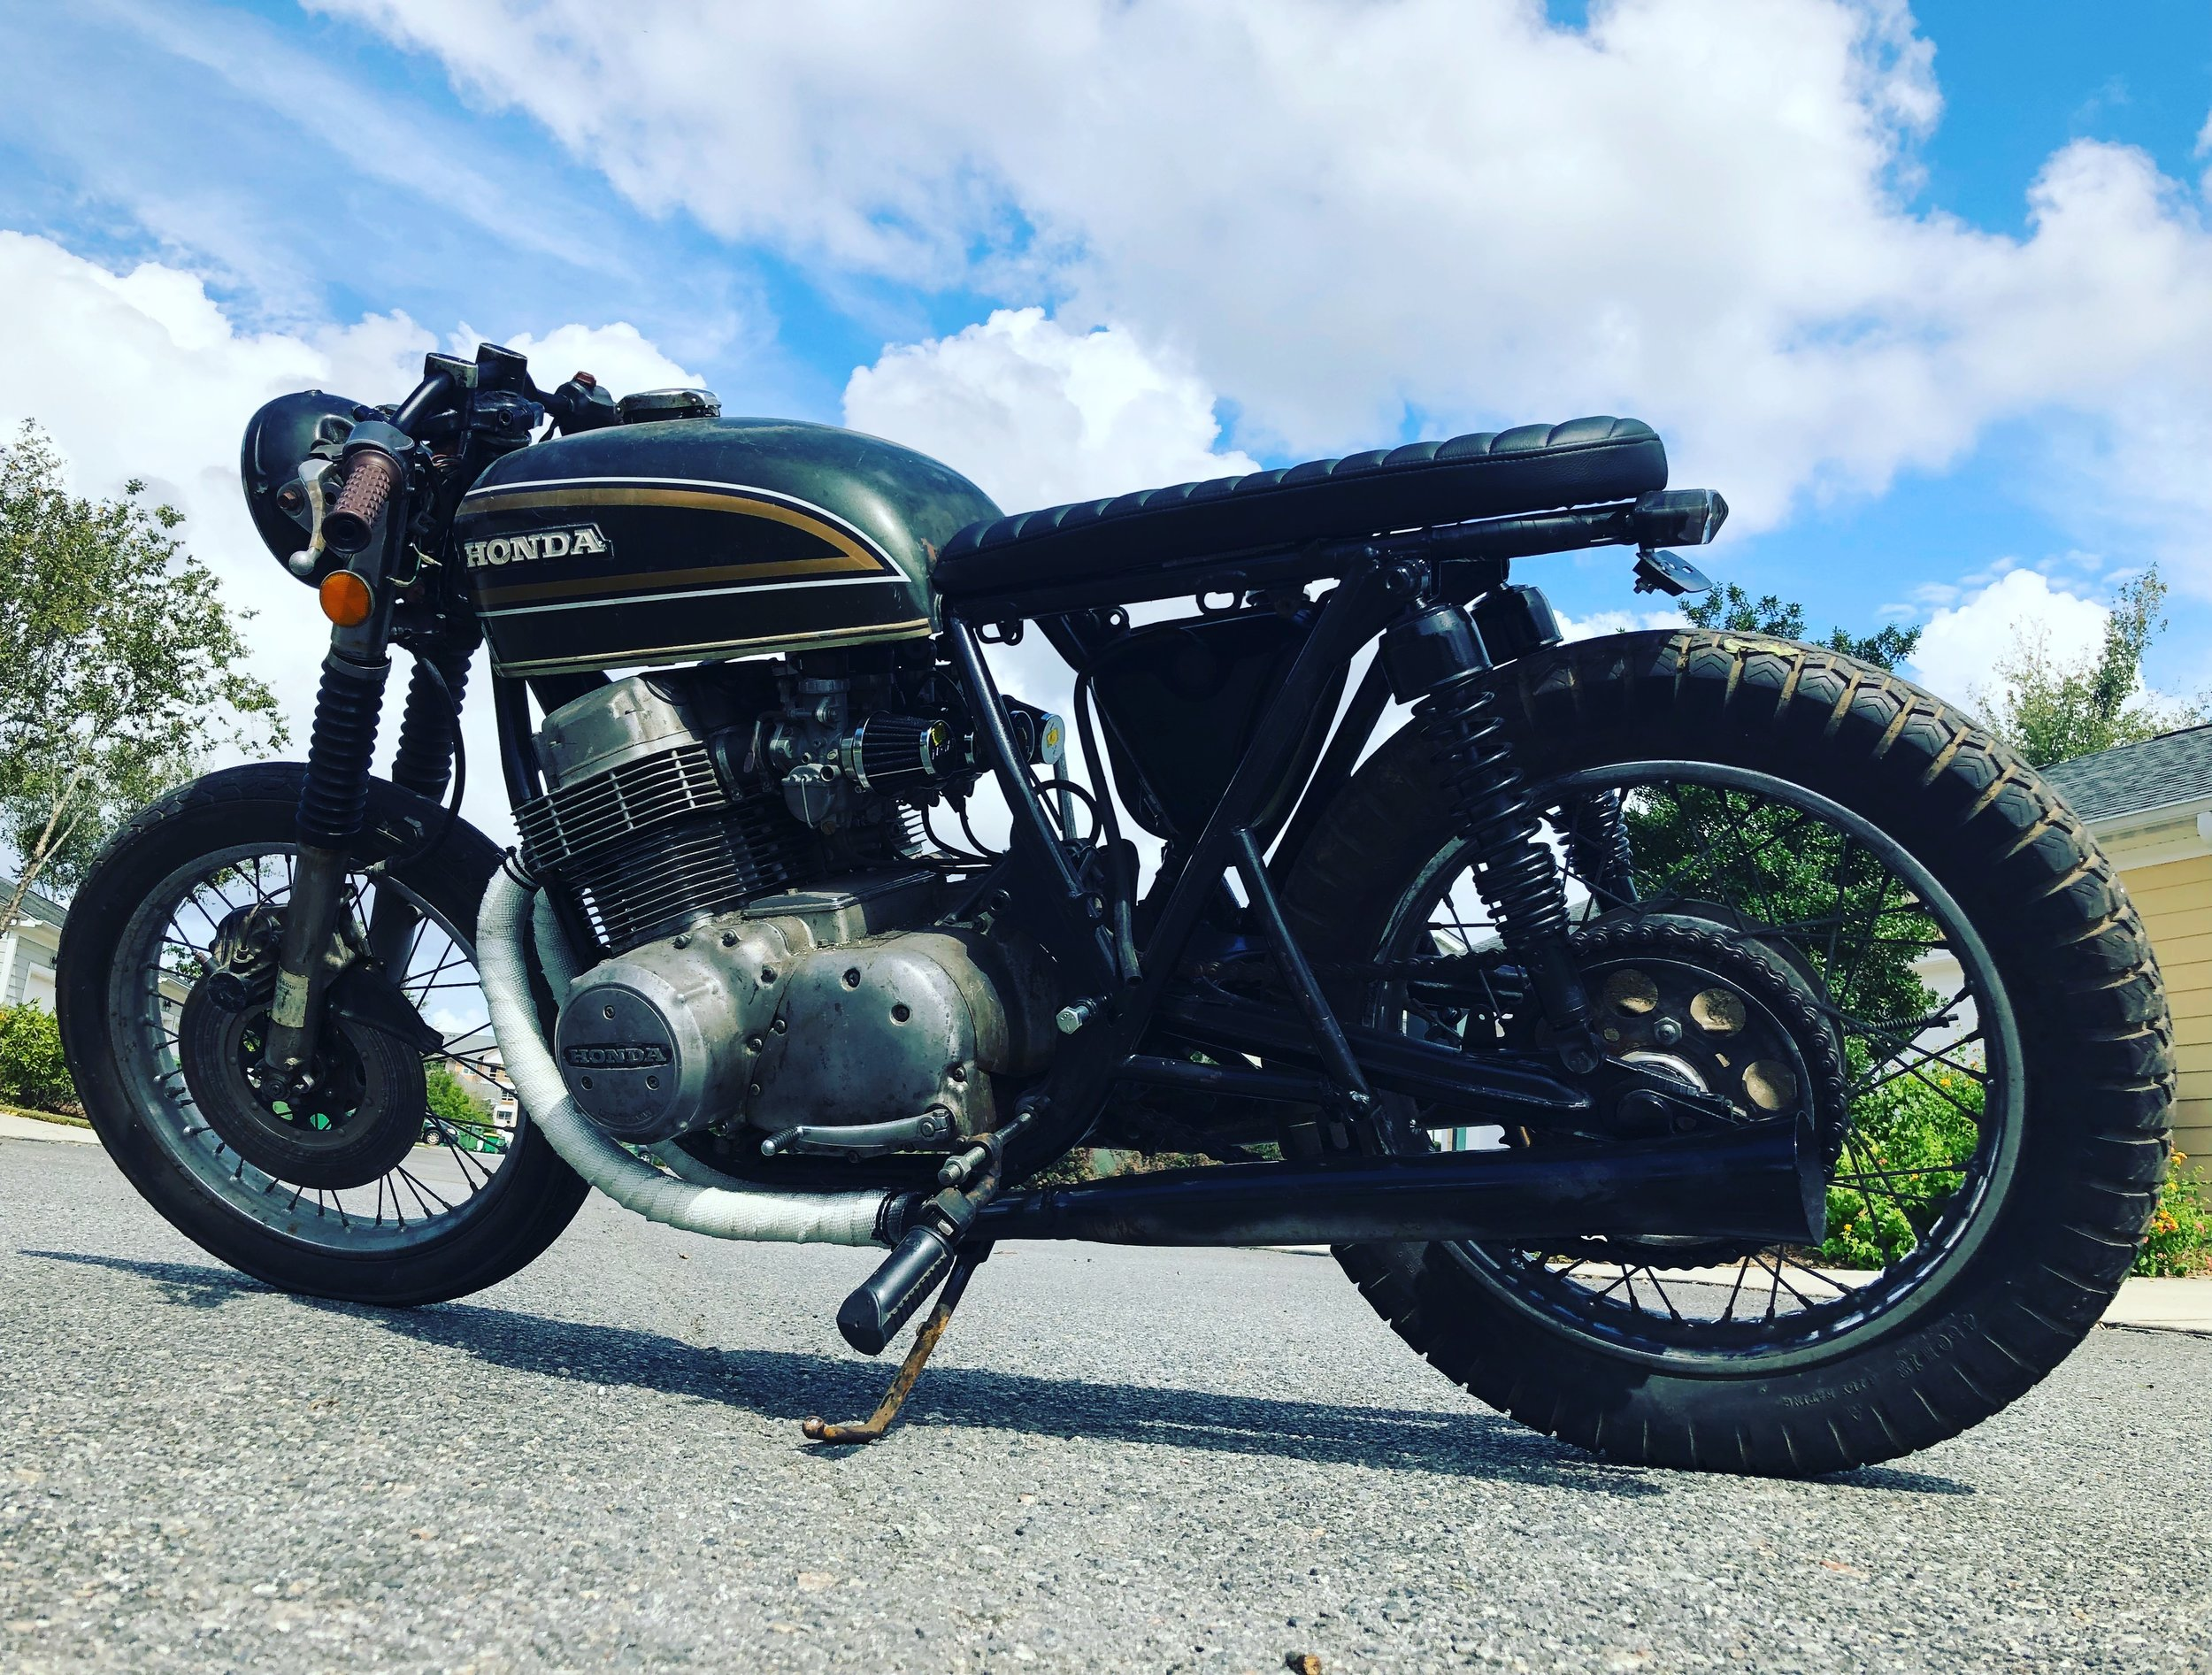 1973 CB750 - Great project bike. Needs finishing up. I have the wiring harness, coil pack as well as other items needed for completing.Available $1,200. email twopencemotorbikes@gmail.com